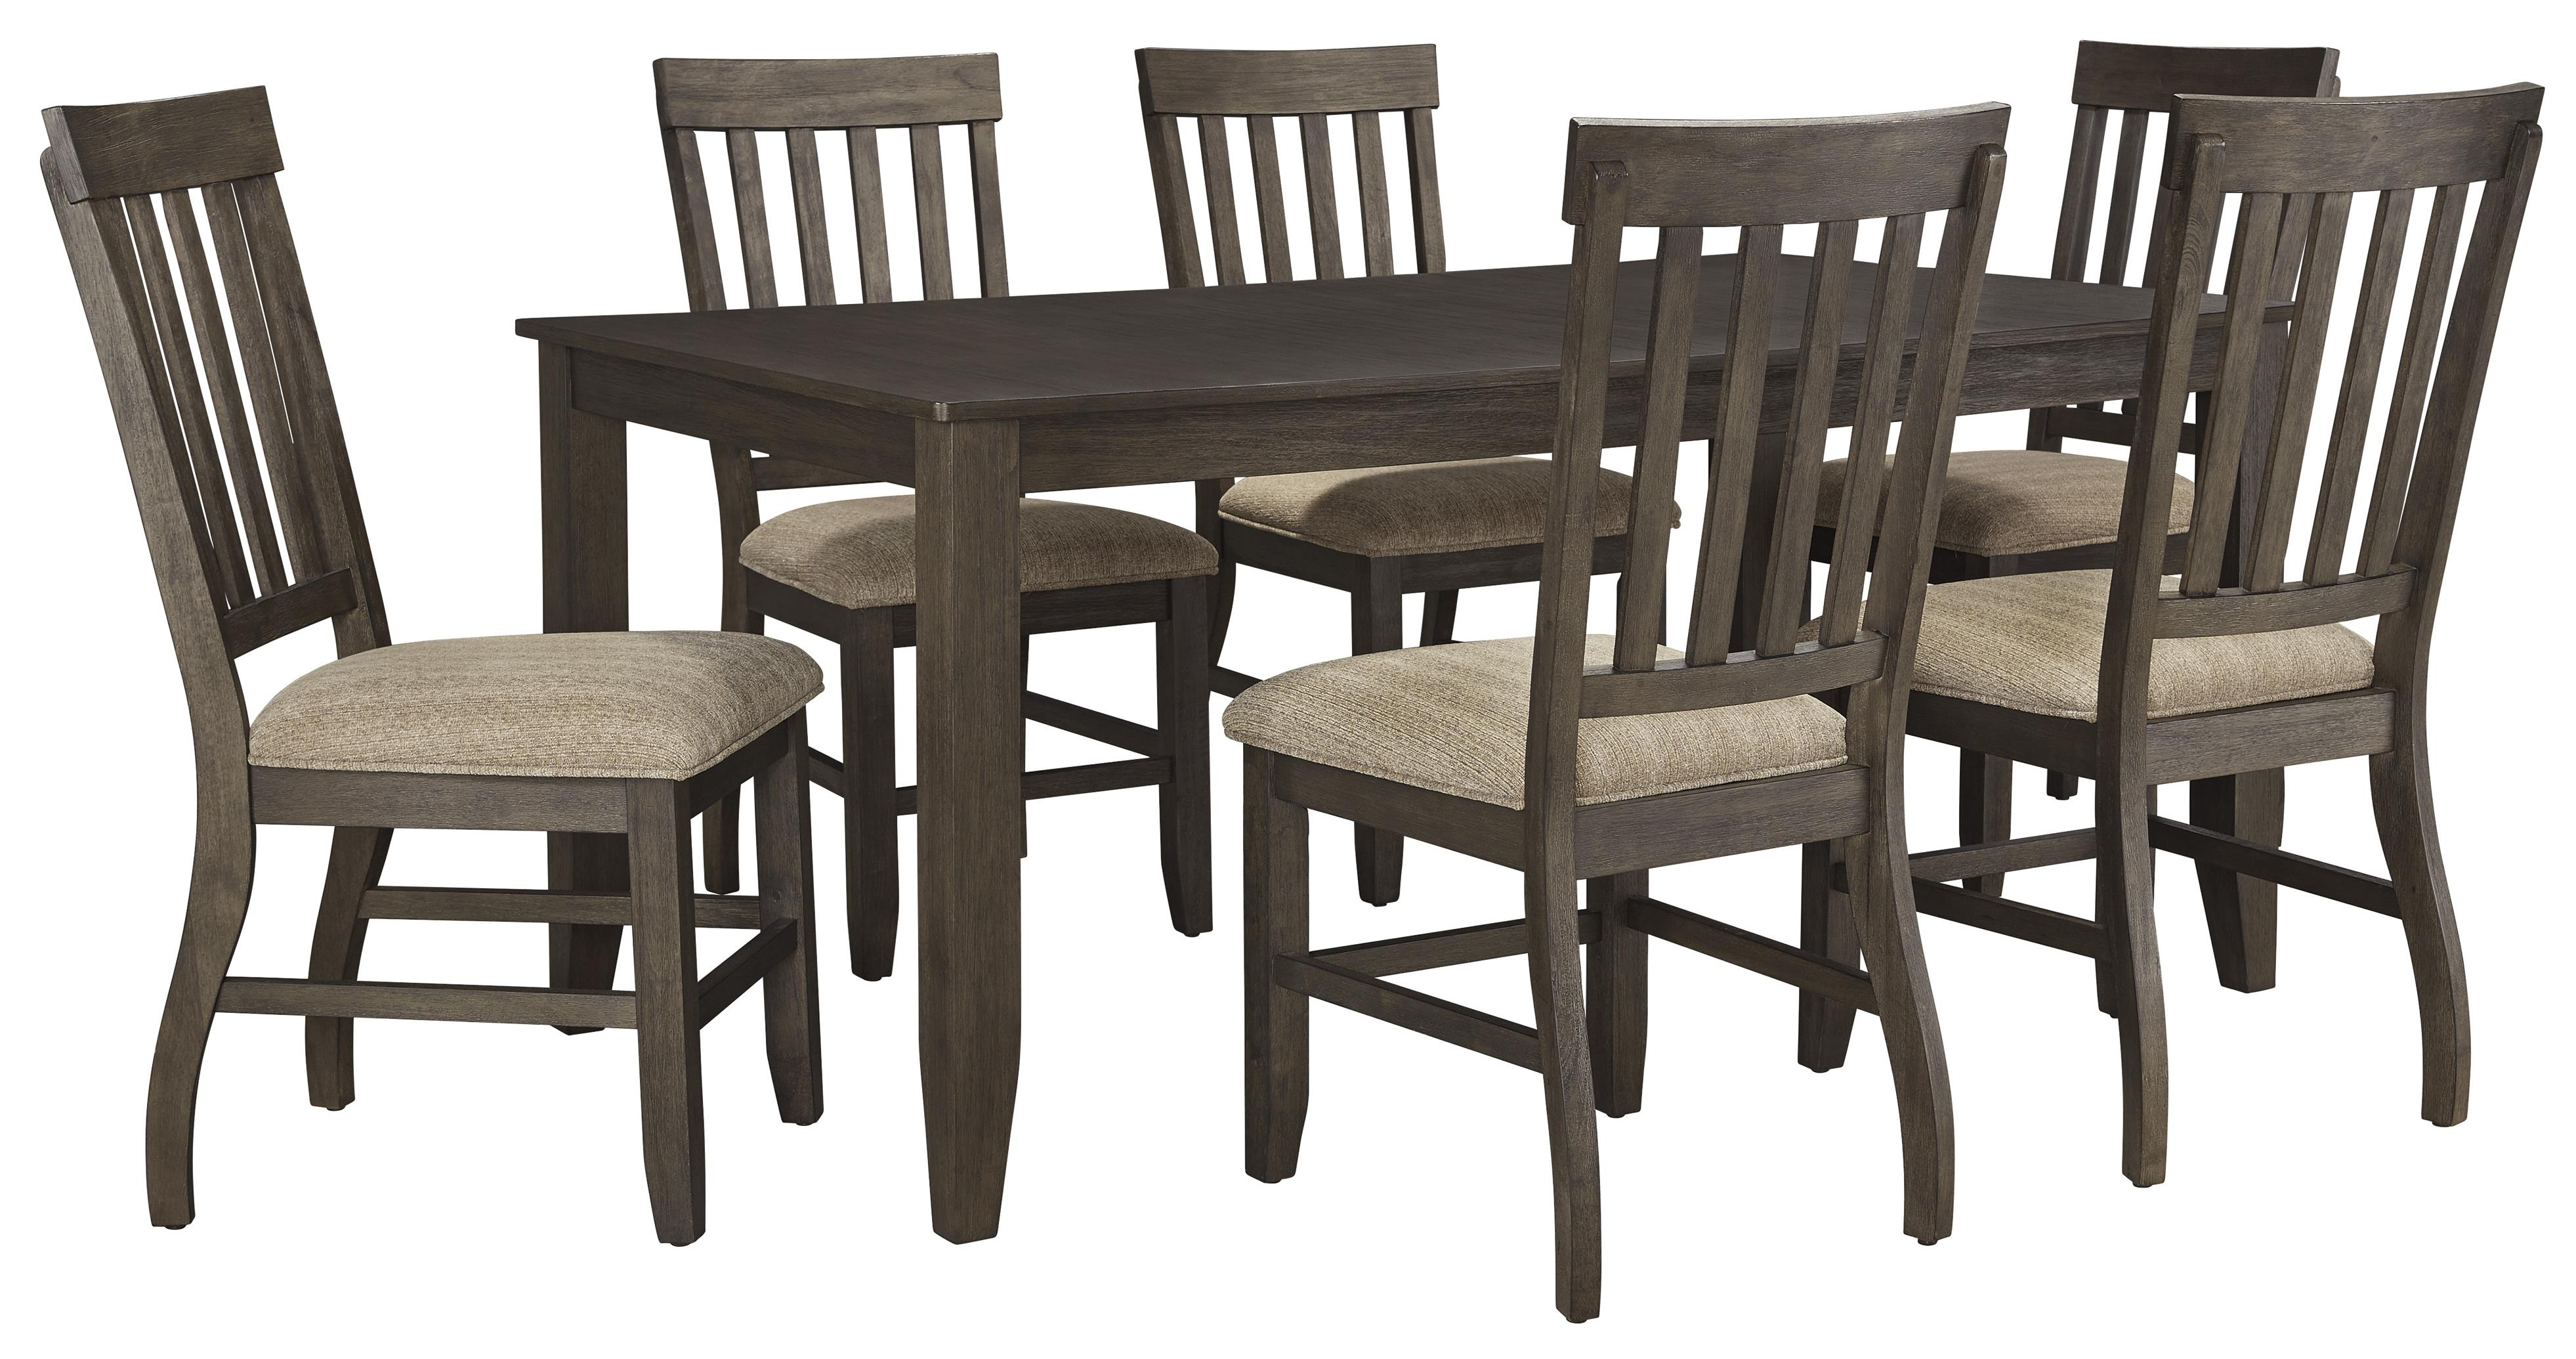 7 Piece Rectangular Dining Table Set by Signature Design Ashley